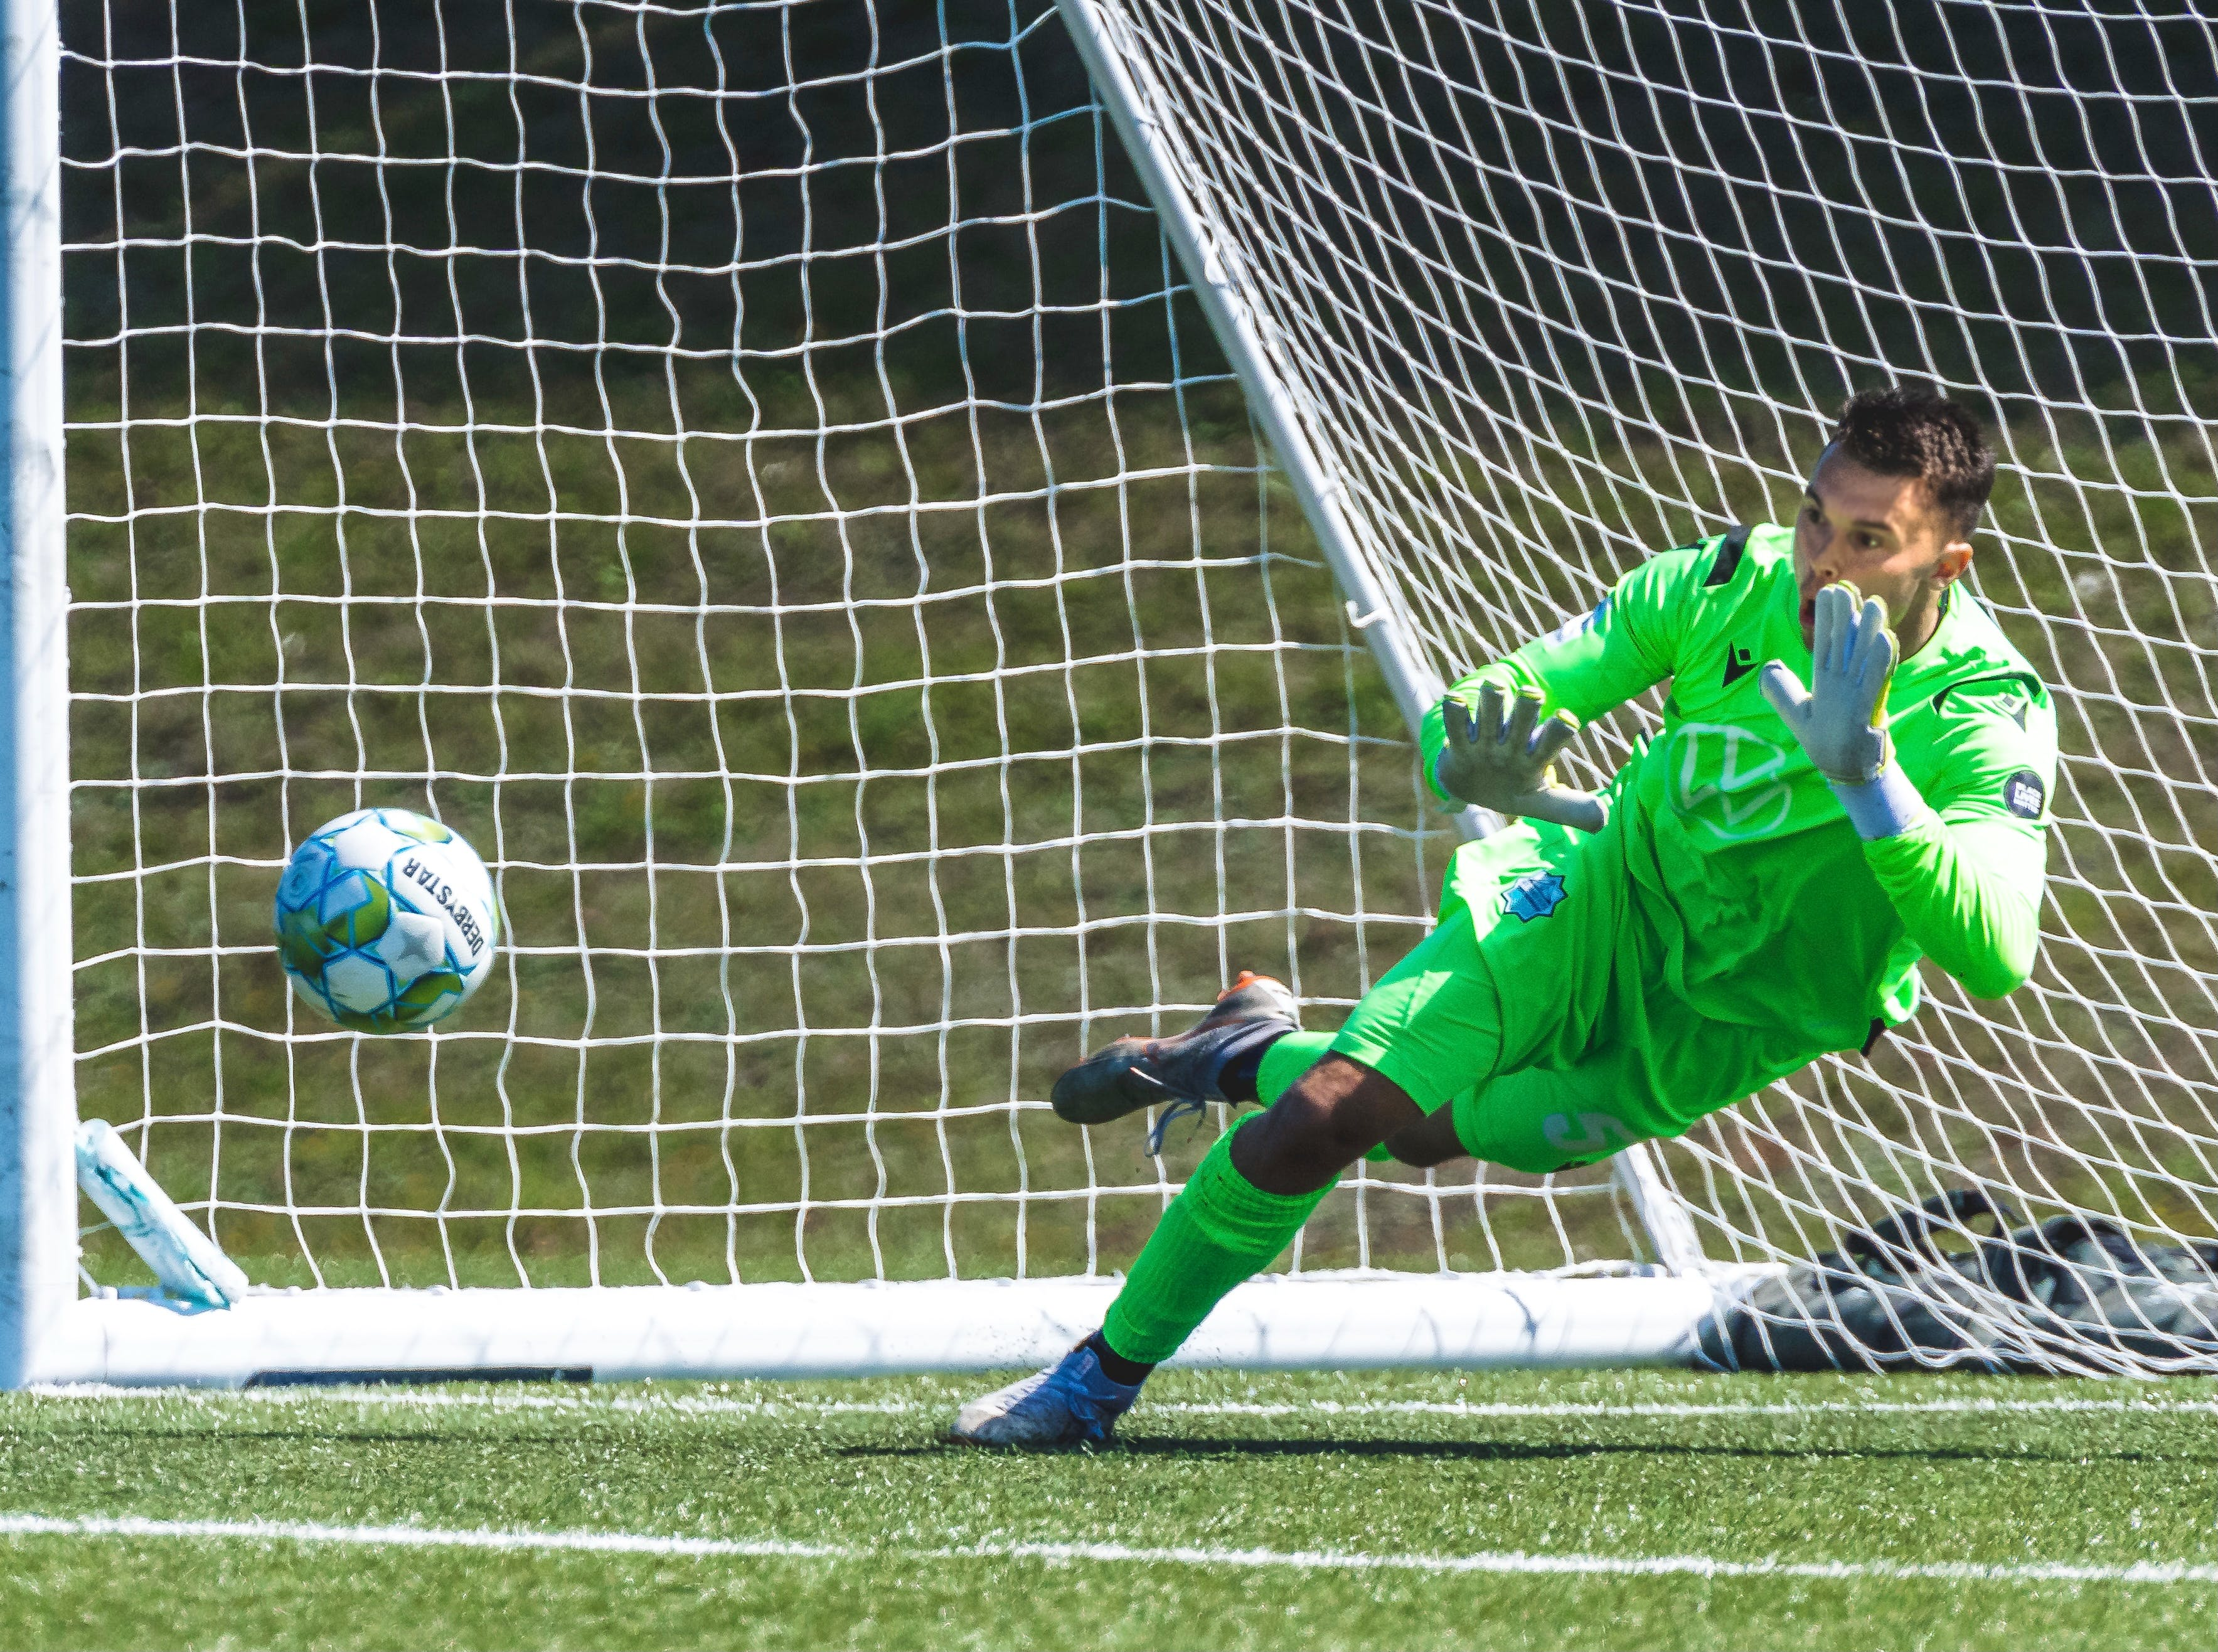 Goalkeeper Christian Oxner has become a homegrown star for his hometown HFX Wanderers.   HFX WANDERERS